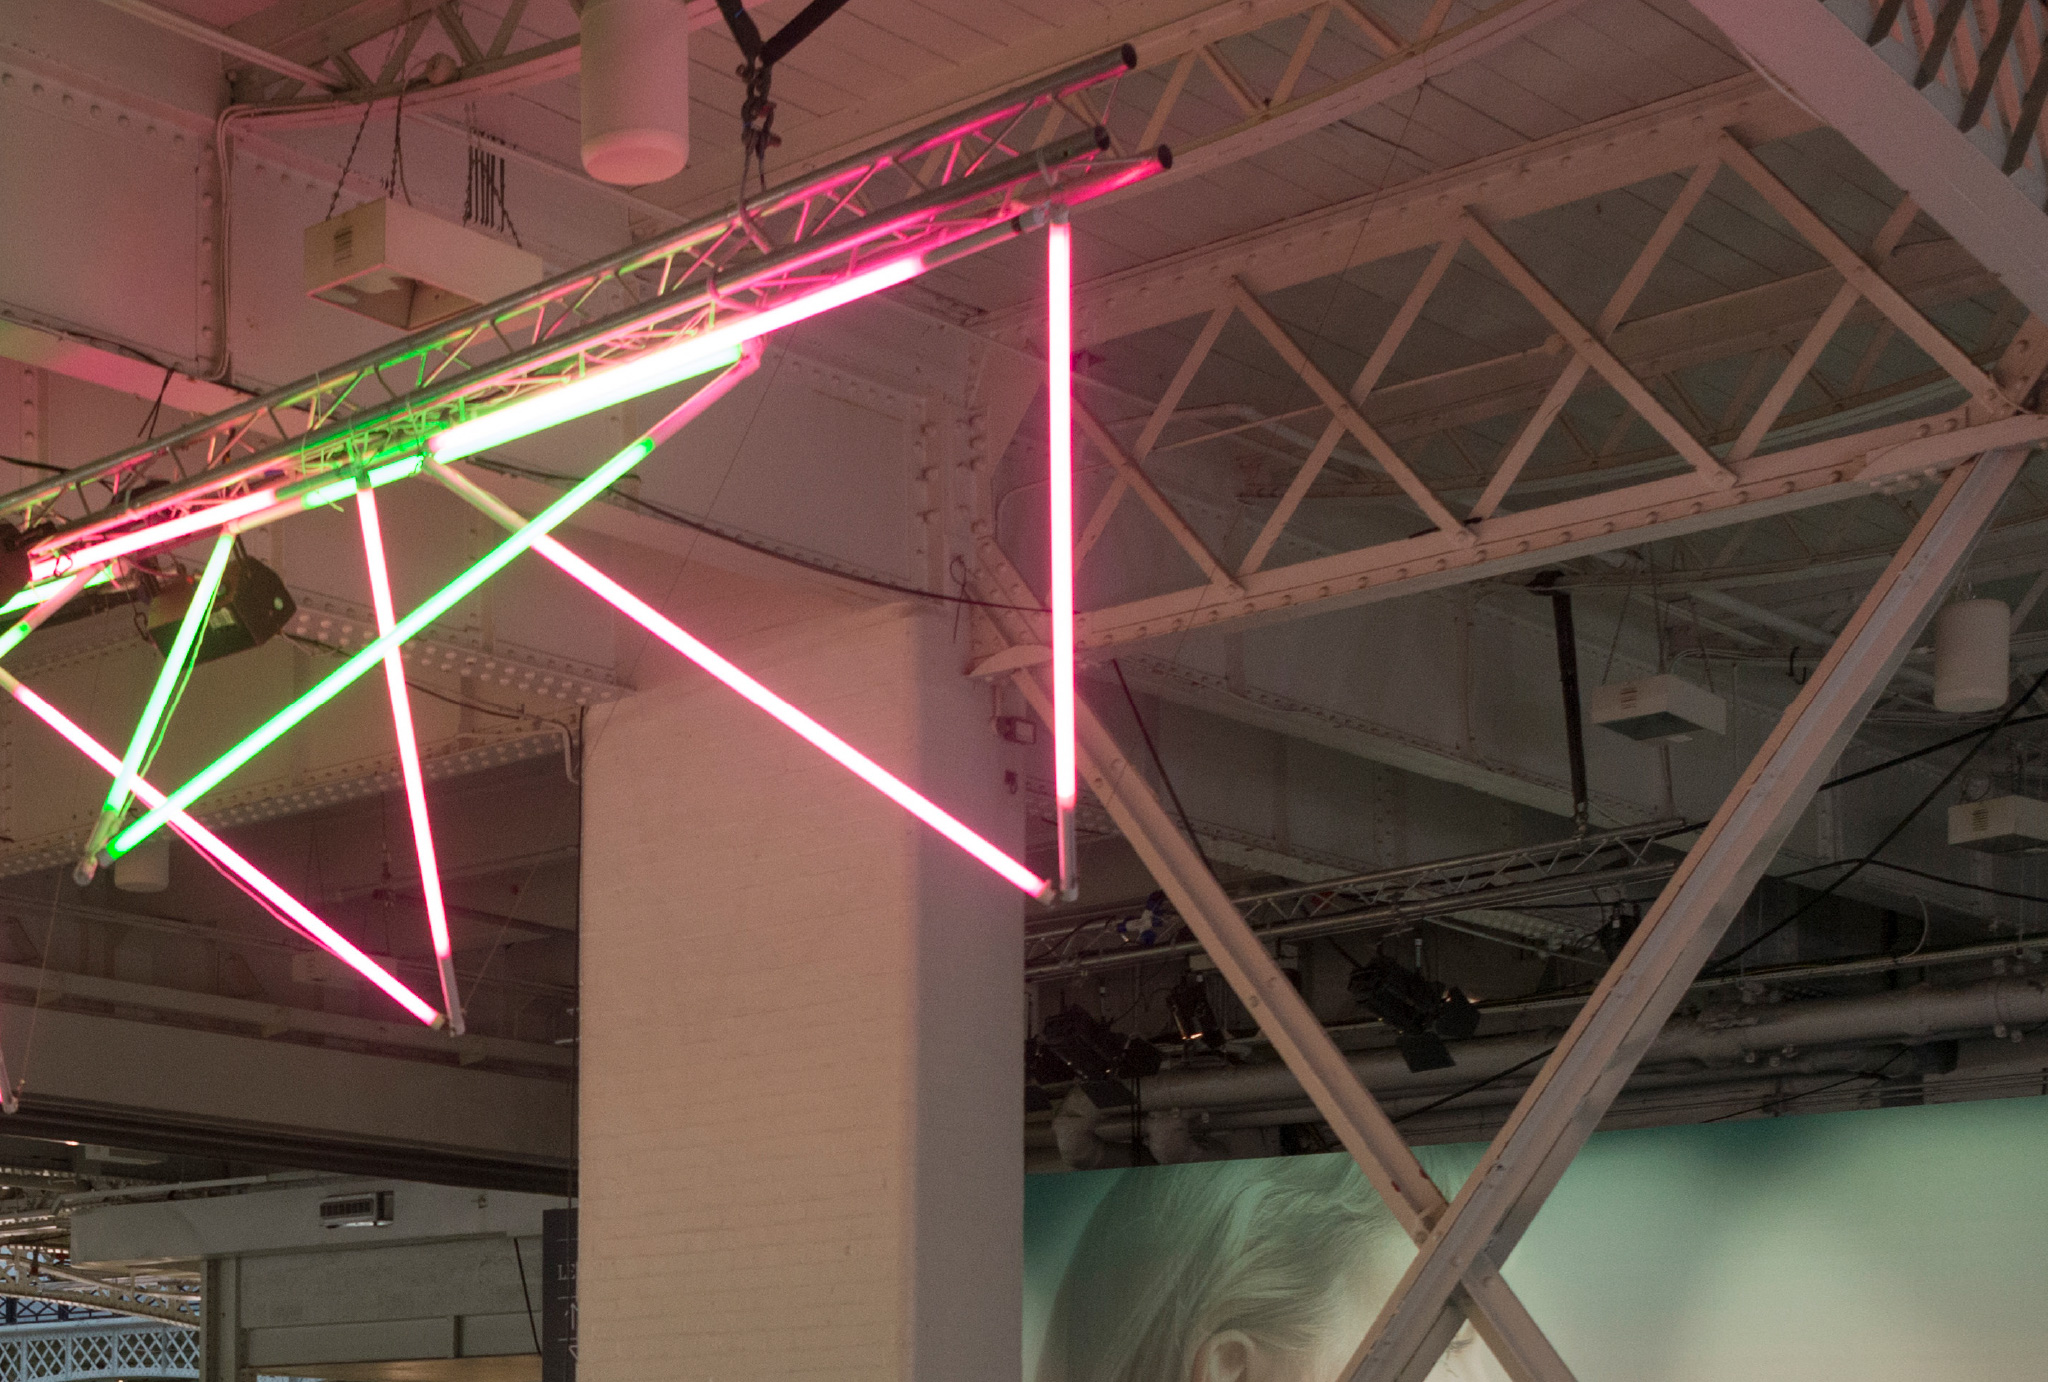 green and pink neon tube hanging from the ceiling